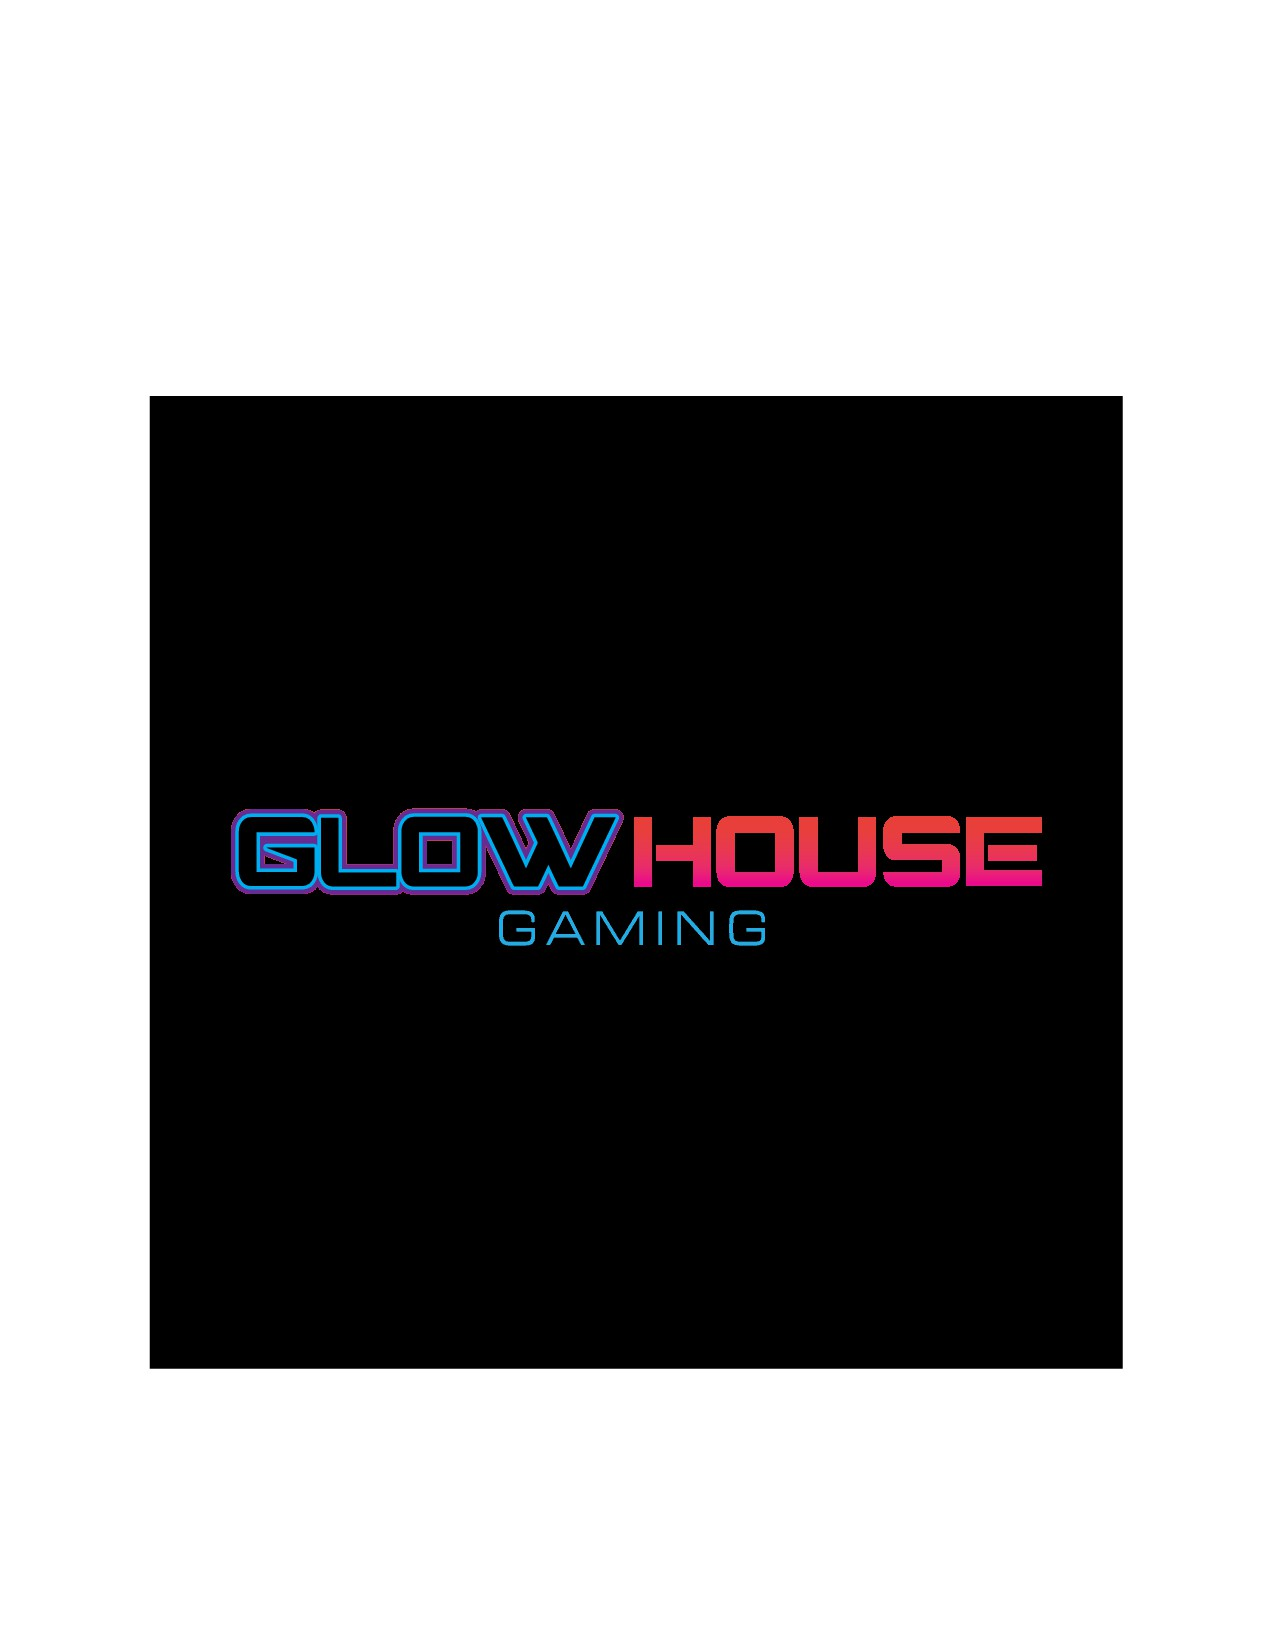 Design a shareable, wearable, hip, urban logo for GlowHouse Gaming